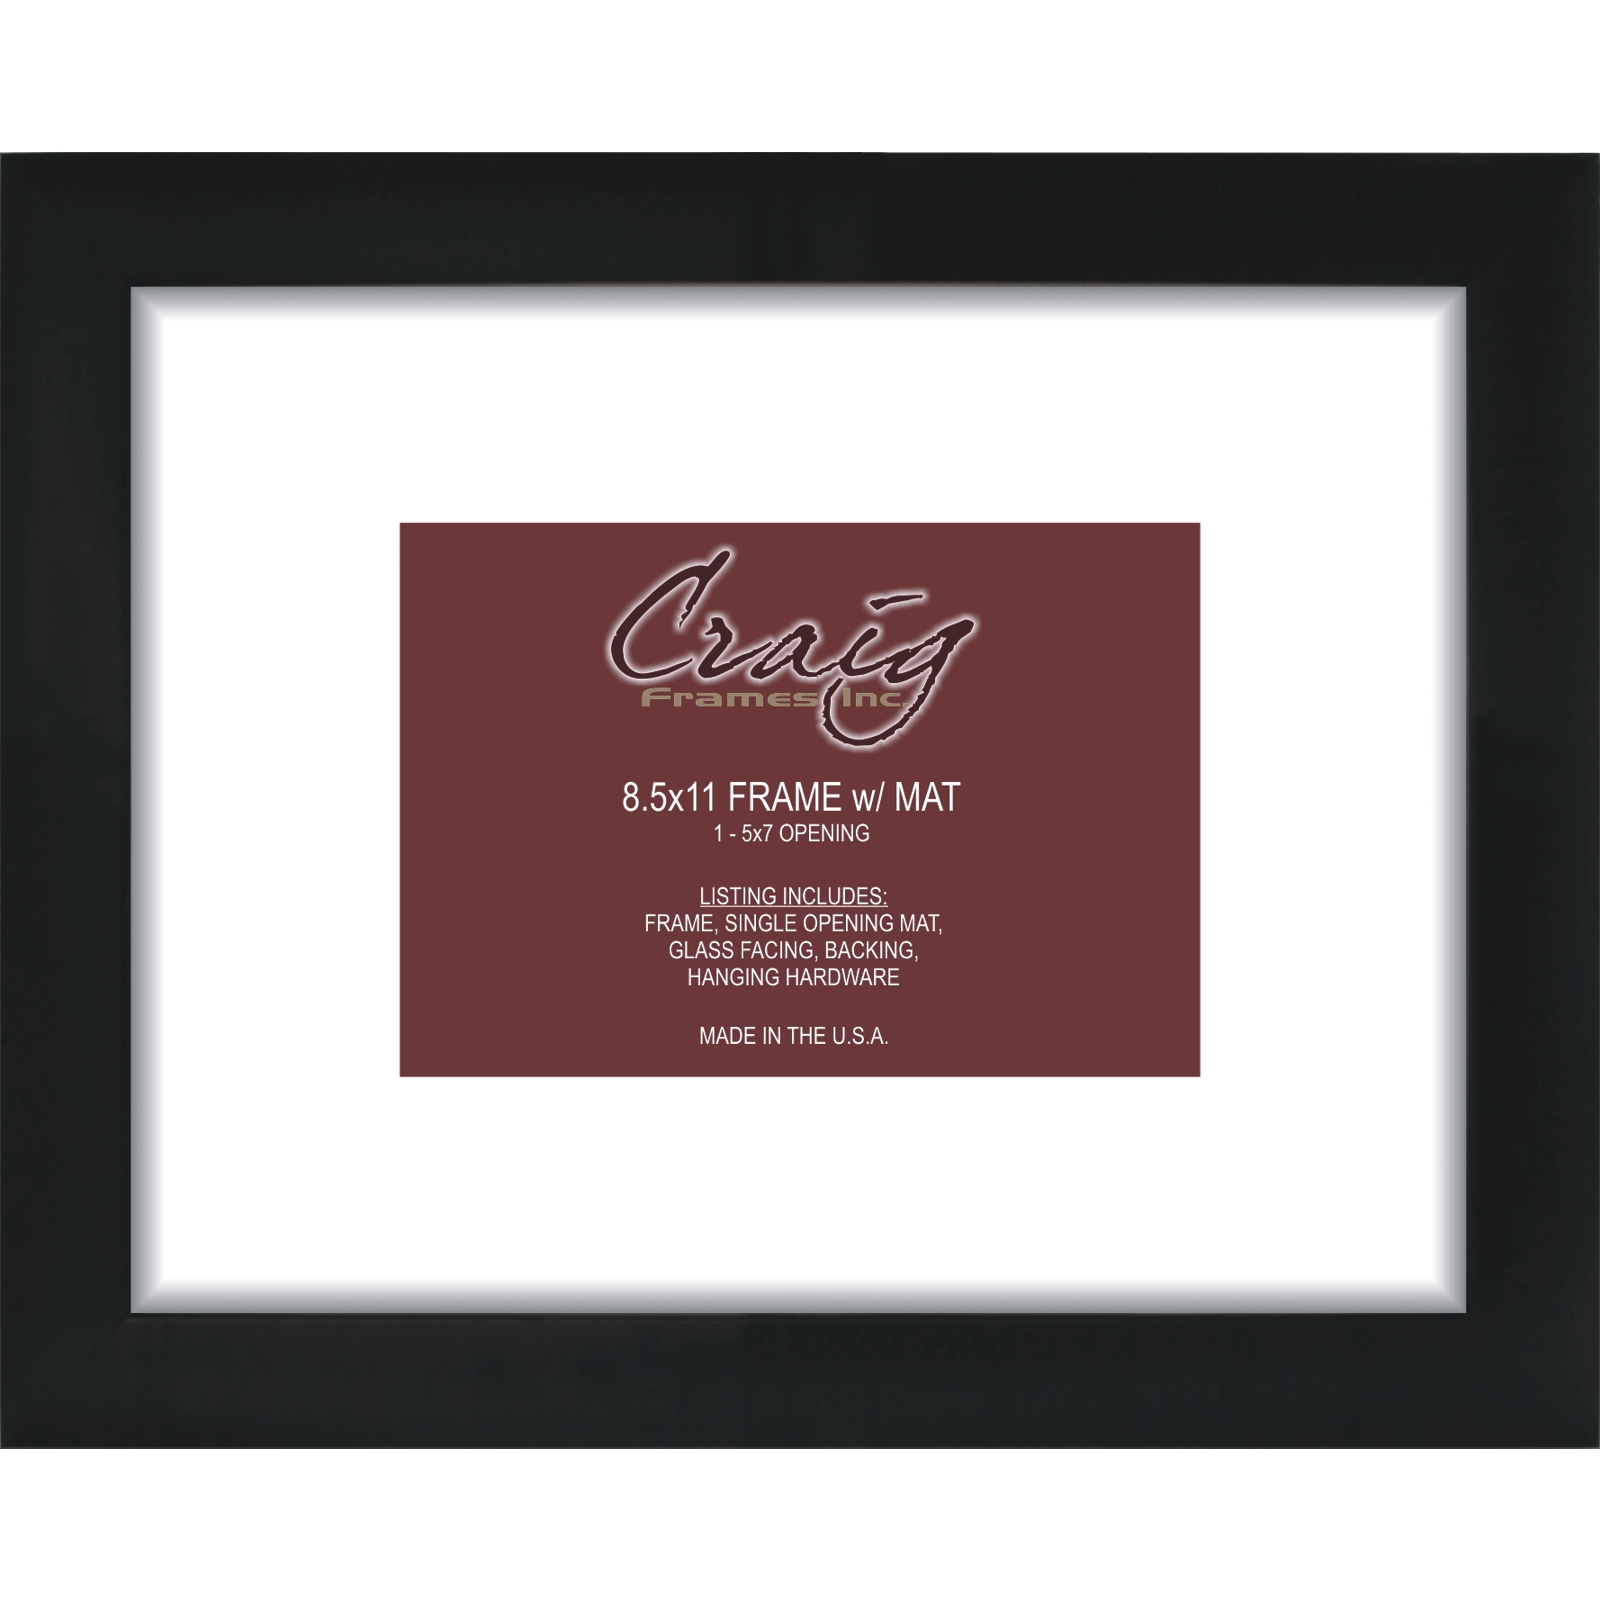 craig frames 8x11 black picture frame white mat with opening for 6x9 image ebay